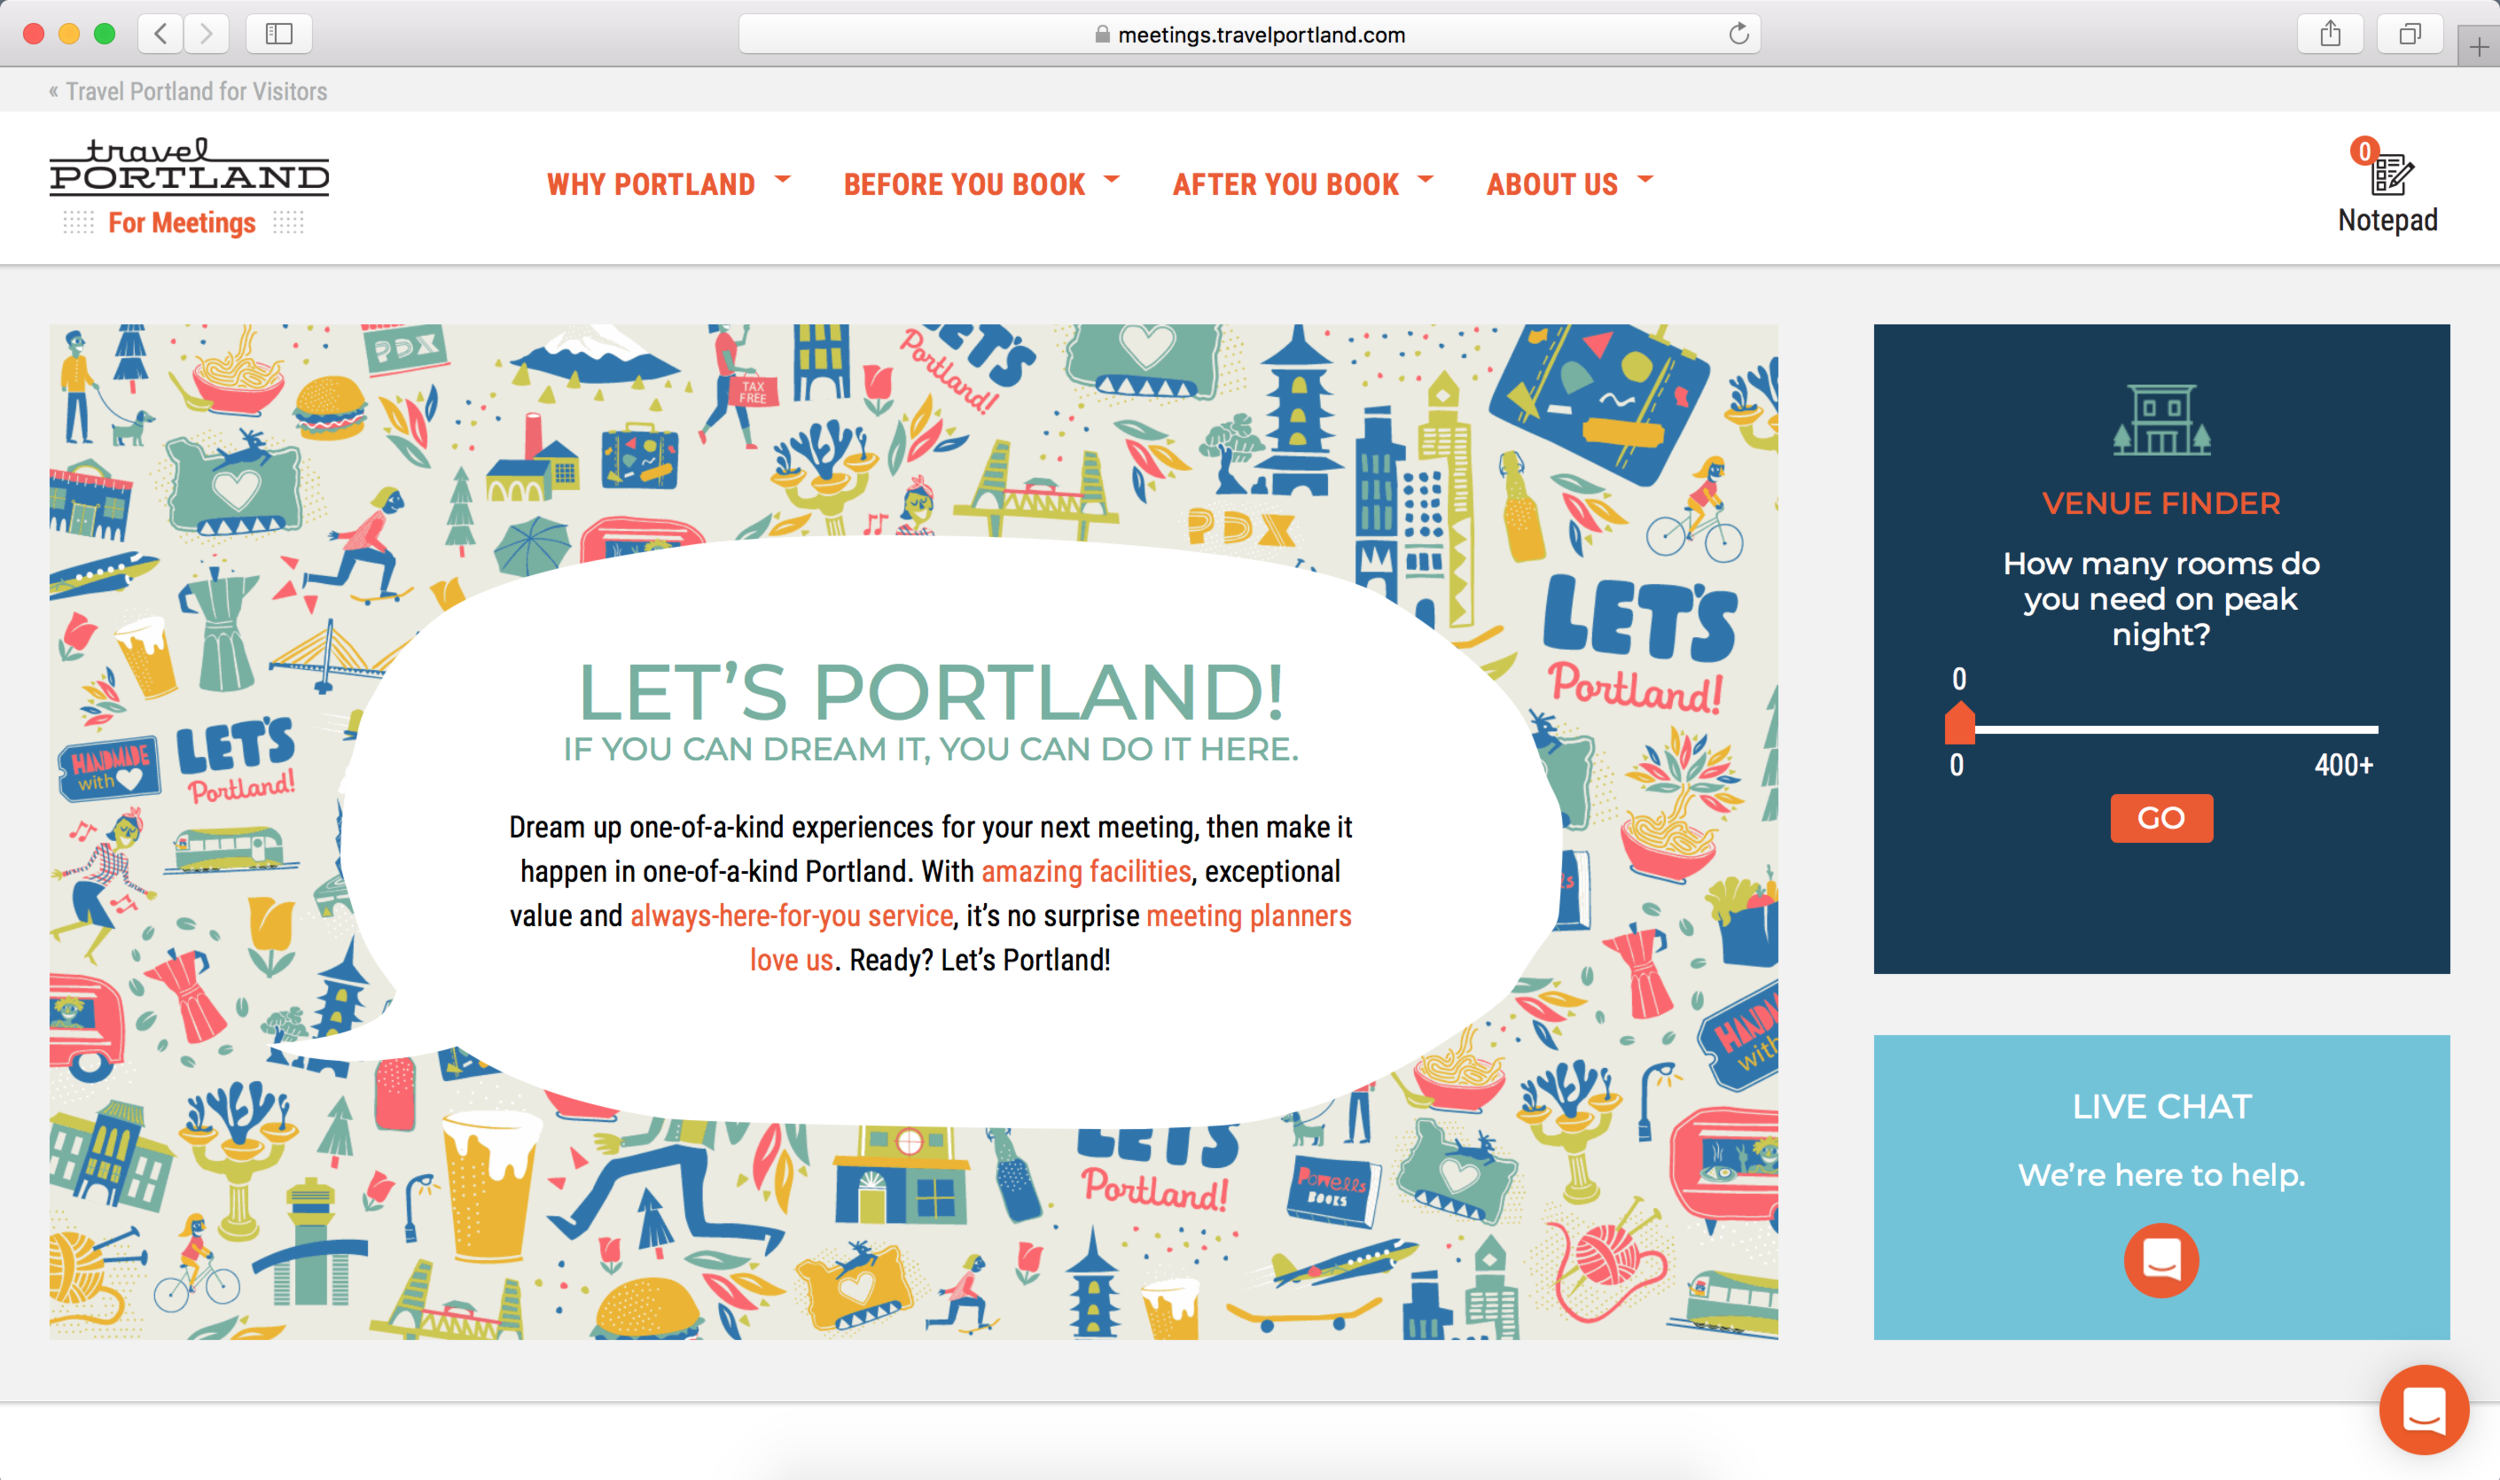 """travel portland // grady britton //  summer 17  let's portland!  meeting planner specific campaign that needed to speak to the can-do attitude of the mp audience, and dovetail with the higher-level """"You Can, In Portland"""" campaign that Travel Portland had recently launched with Wieden+Kennedy."""